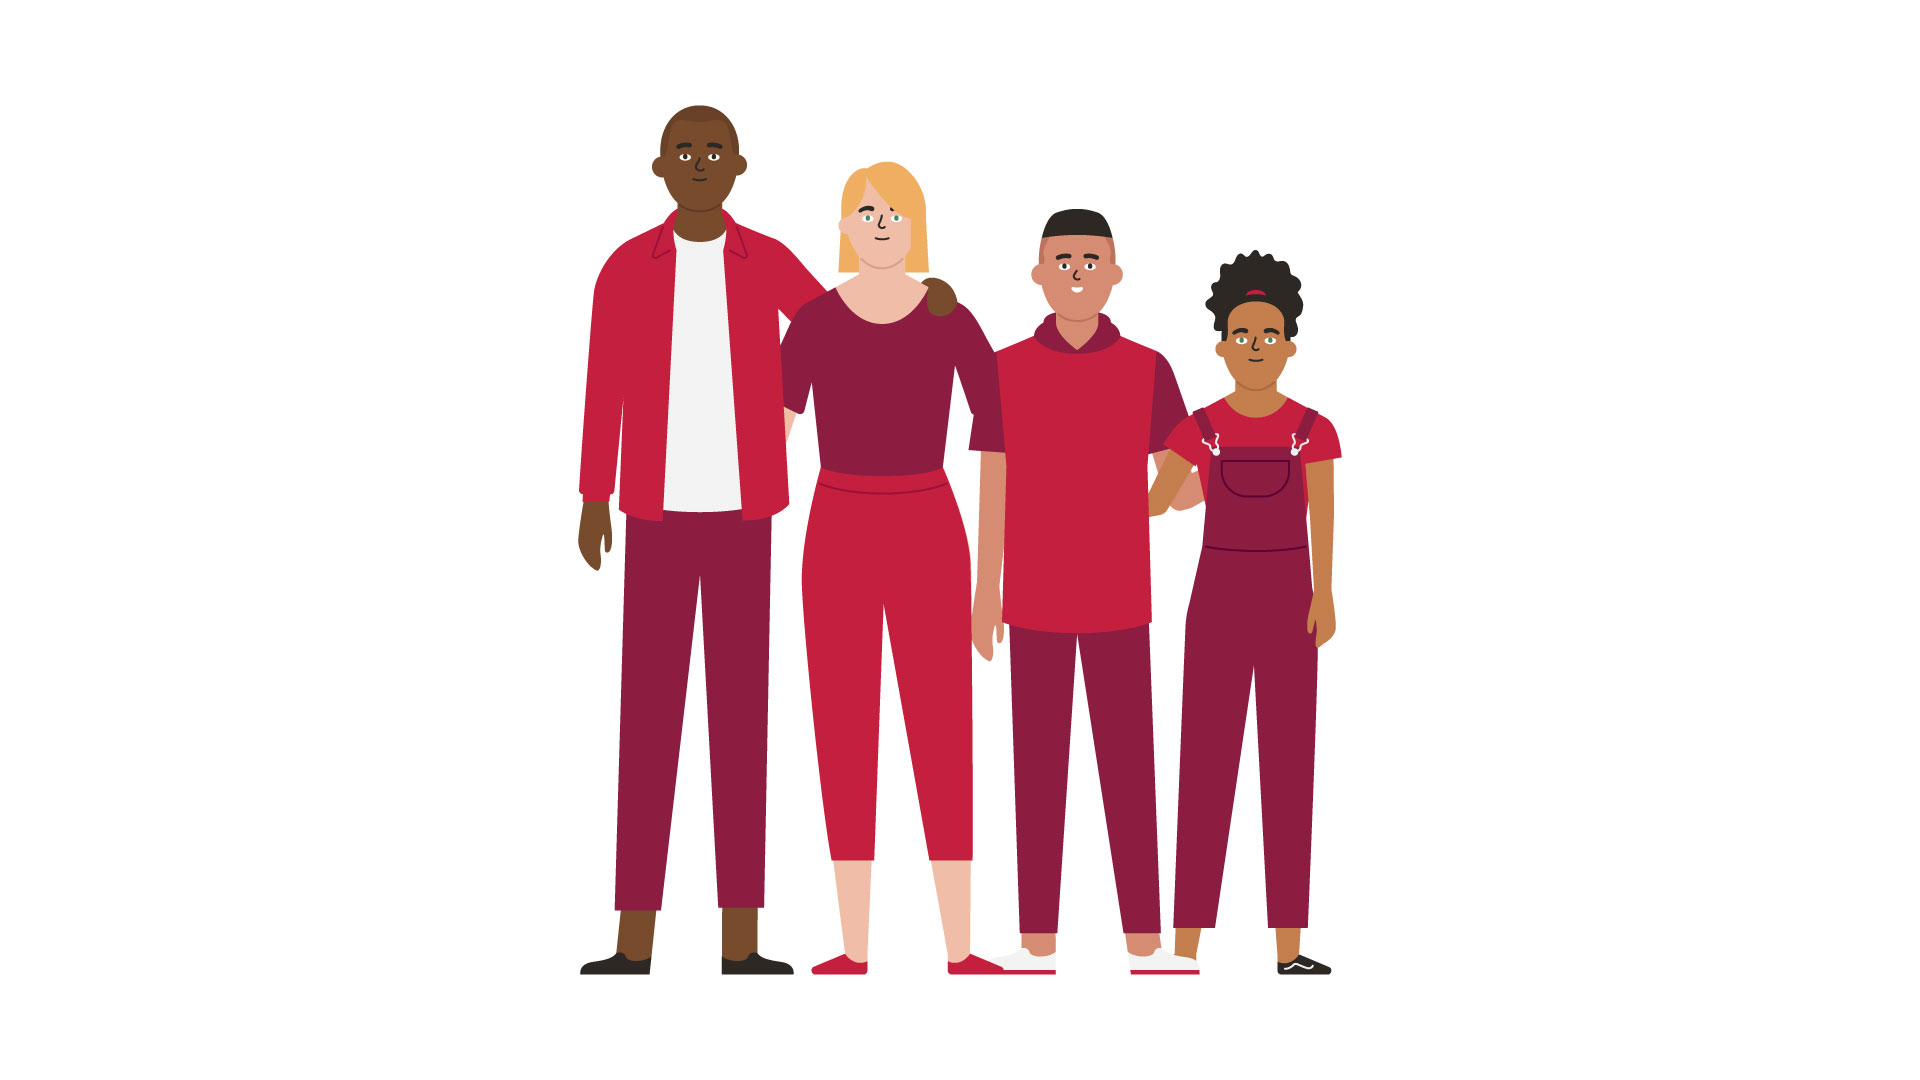 Vector illustration of a family for the CIBC communications